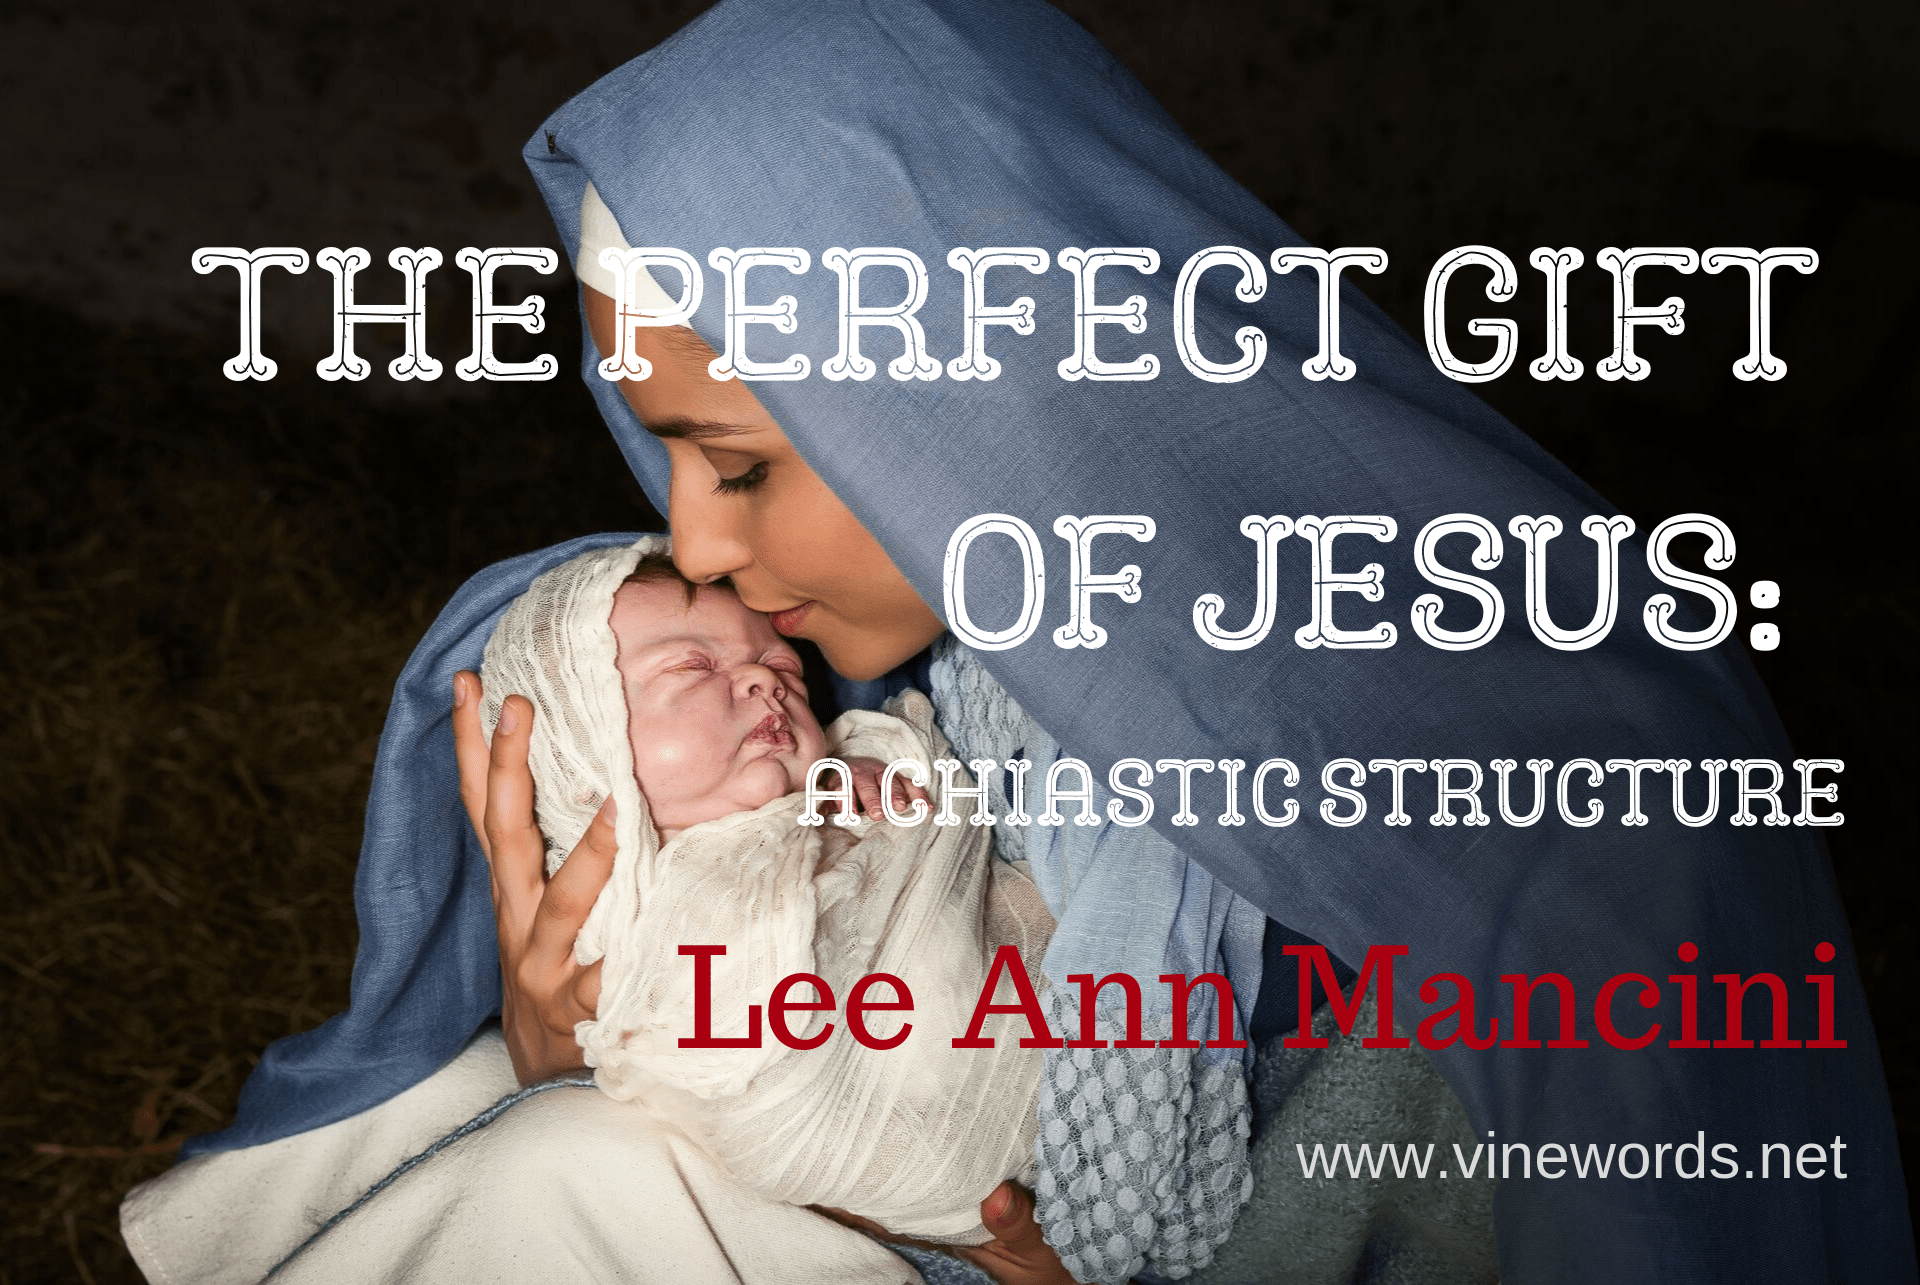 Contributor Lee Ann Mancini: The Perfect Gift of Jesus: A Chiastic Structure